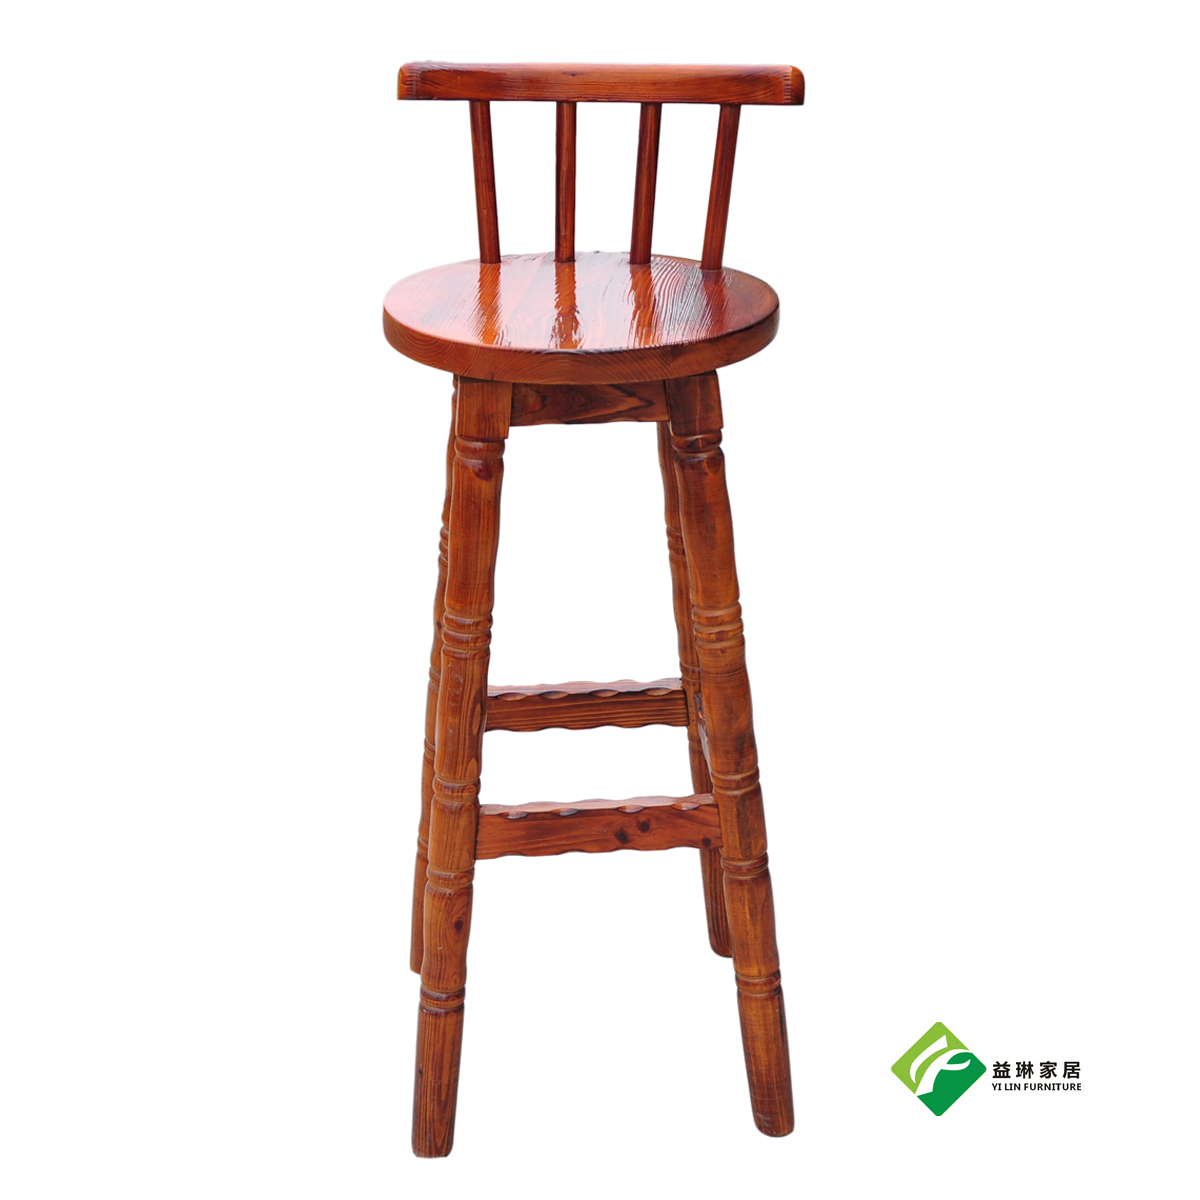 Peachy Lin Yi Burning Pine Carbide Rotating High Chairs Bar Stool Back Black Blue Brown Custom Outdoor In Bar Chairs From Furniture On Aliexpress Com Inzonedesignstudio Interior Chair Design Inzonedesignstudiocom